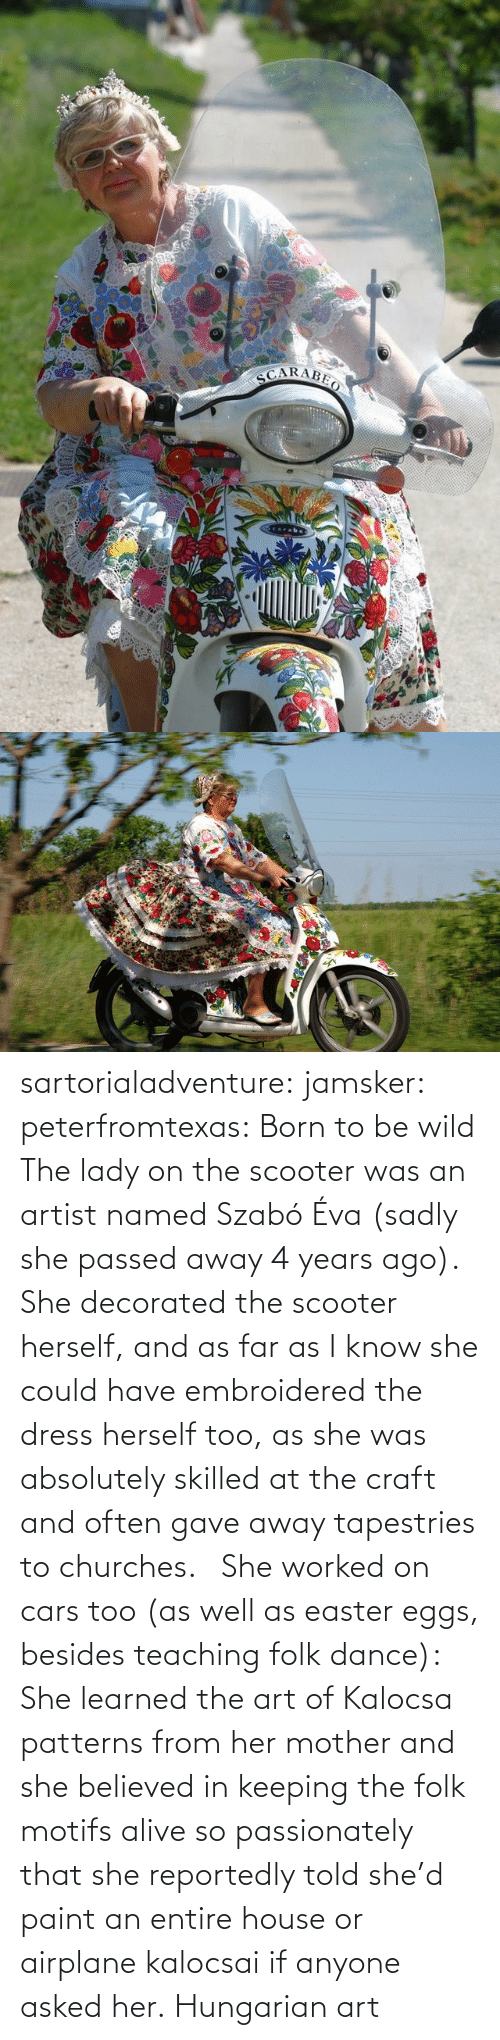 jpg: sartorialadventure: jamsker:  peterfromtexas: Born to be wild The lady on the scooter was an artist named Szabó Éva (sadly she passed away 4 years ago). She decorated the scooter herself, and as far as I know she could have embroidered the dress herself too, as she was absolutely skilled at the craft and often gave away tapestries to churches.   She worked on cars too (as well as easter eggs, besides teaching folk dance): She learned the art of Kalocsa patterns from her mother and she believed in keeping the folk motifs alive so passionately that she reportedly told she'd paint an entire house or airplane kalocsai if anyone asked her.  Hungarian art